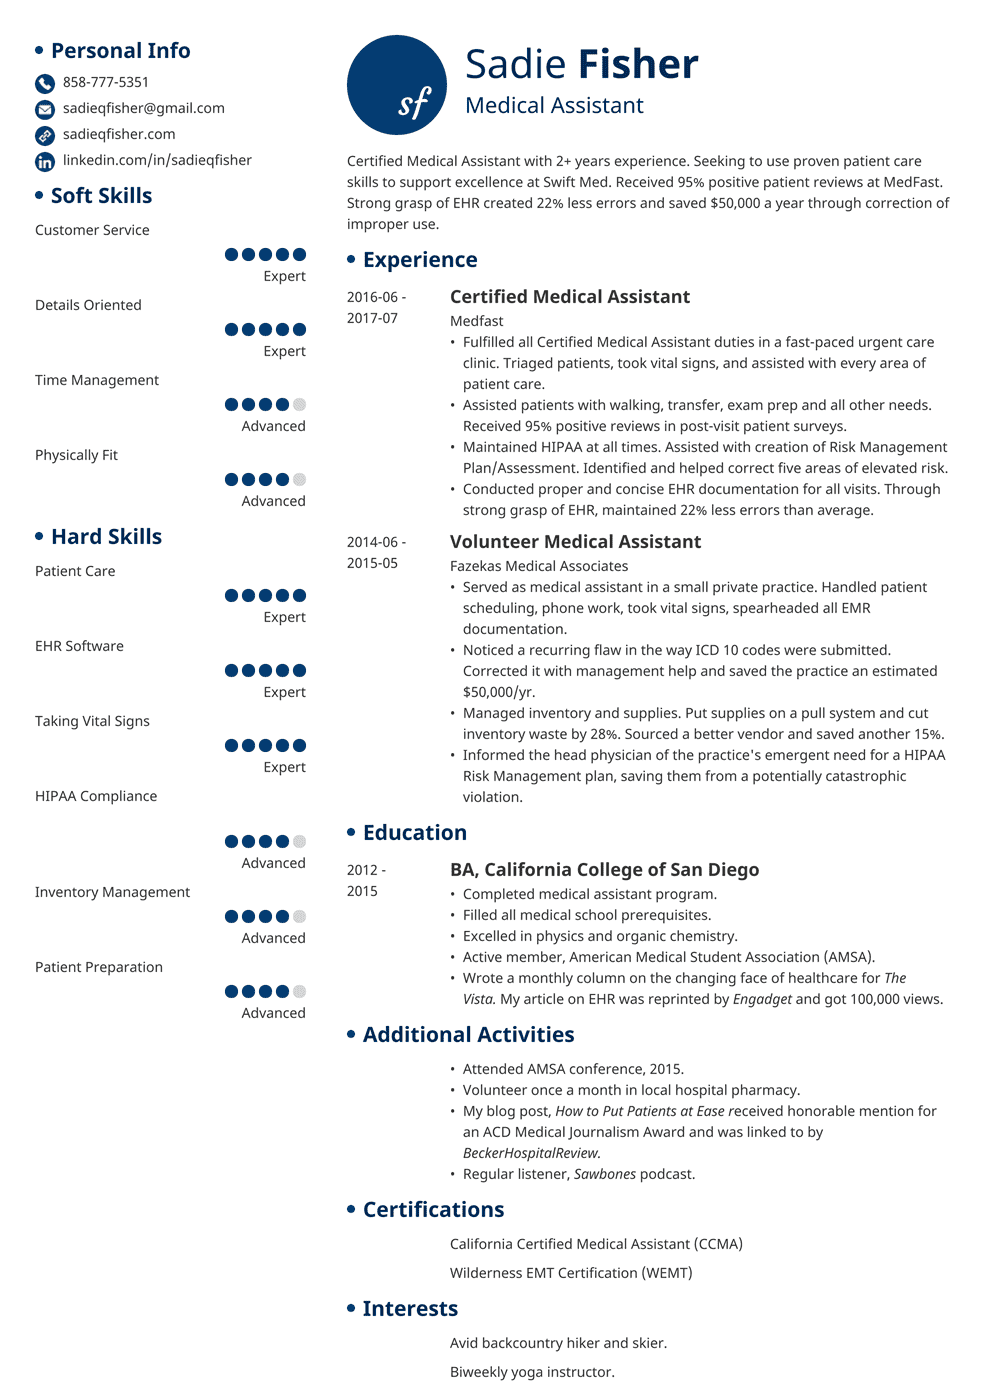 medical assistant resume template initials Resume